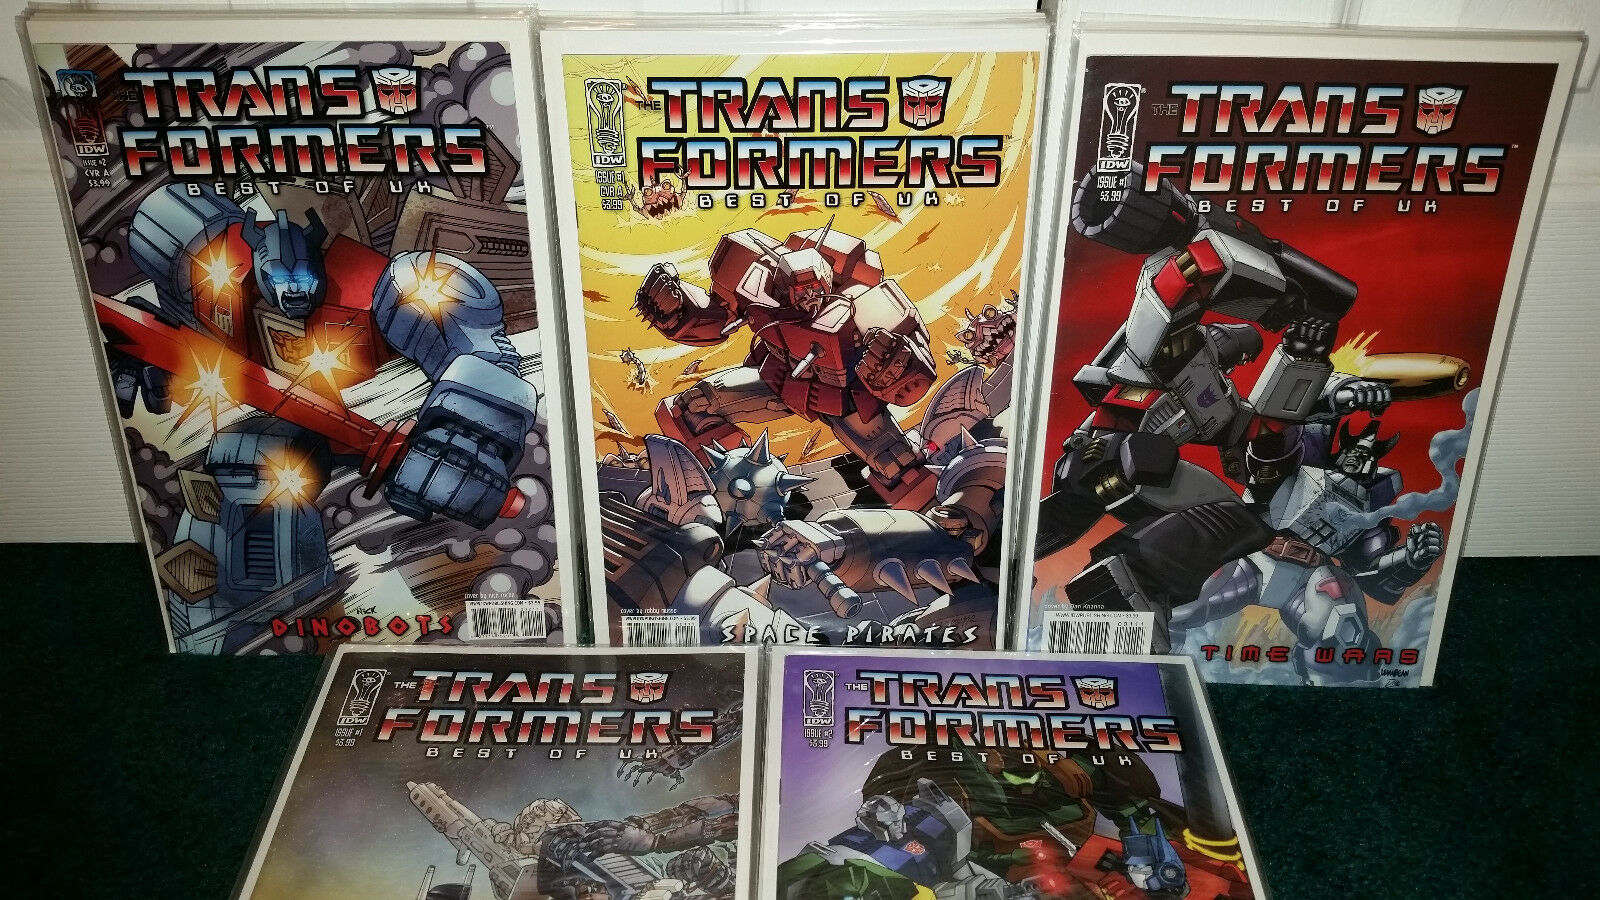 Transformers Best Of UK IDW Dinbots Space Pirates Time Wars City Of Fear Prey